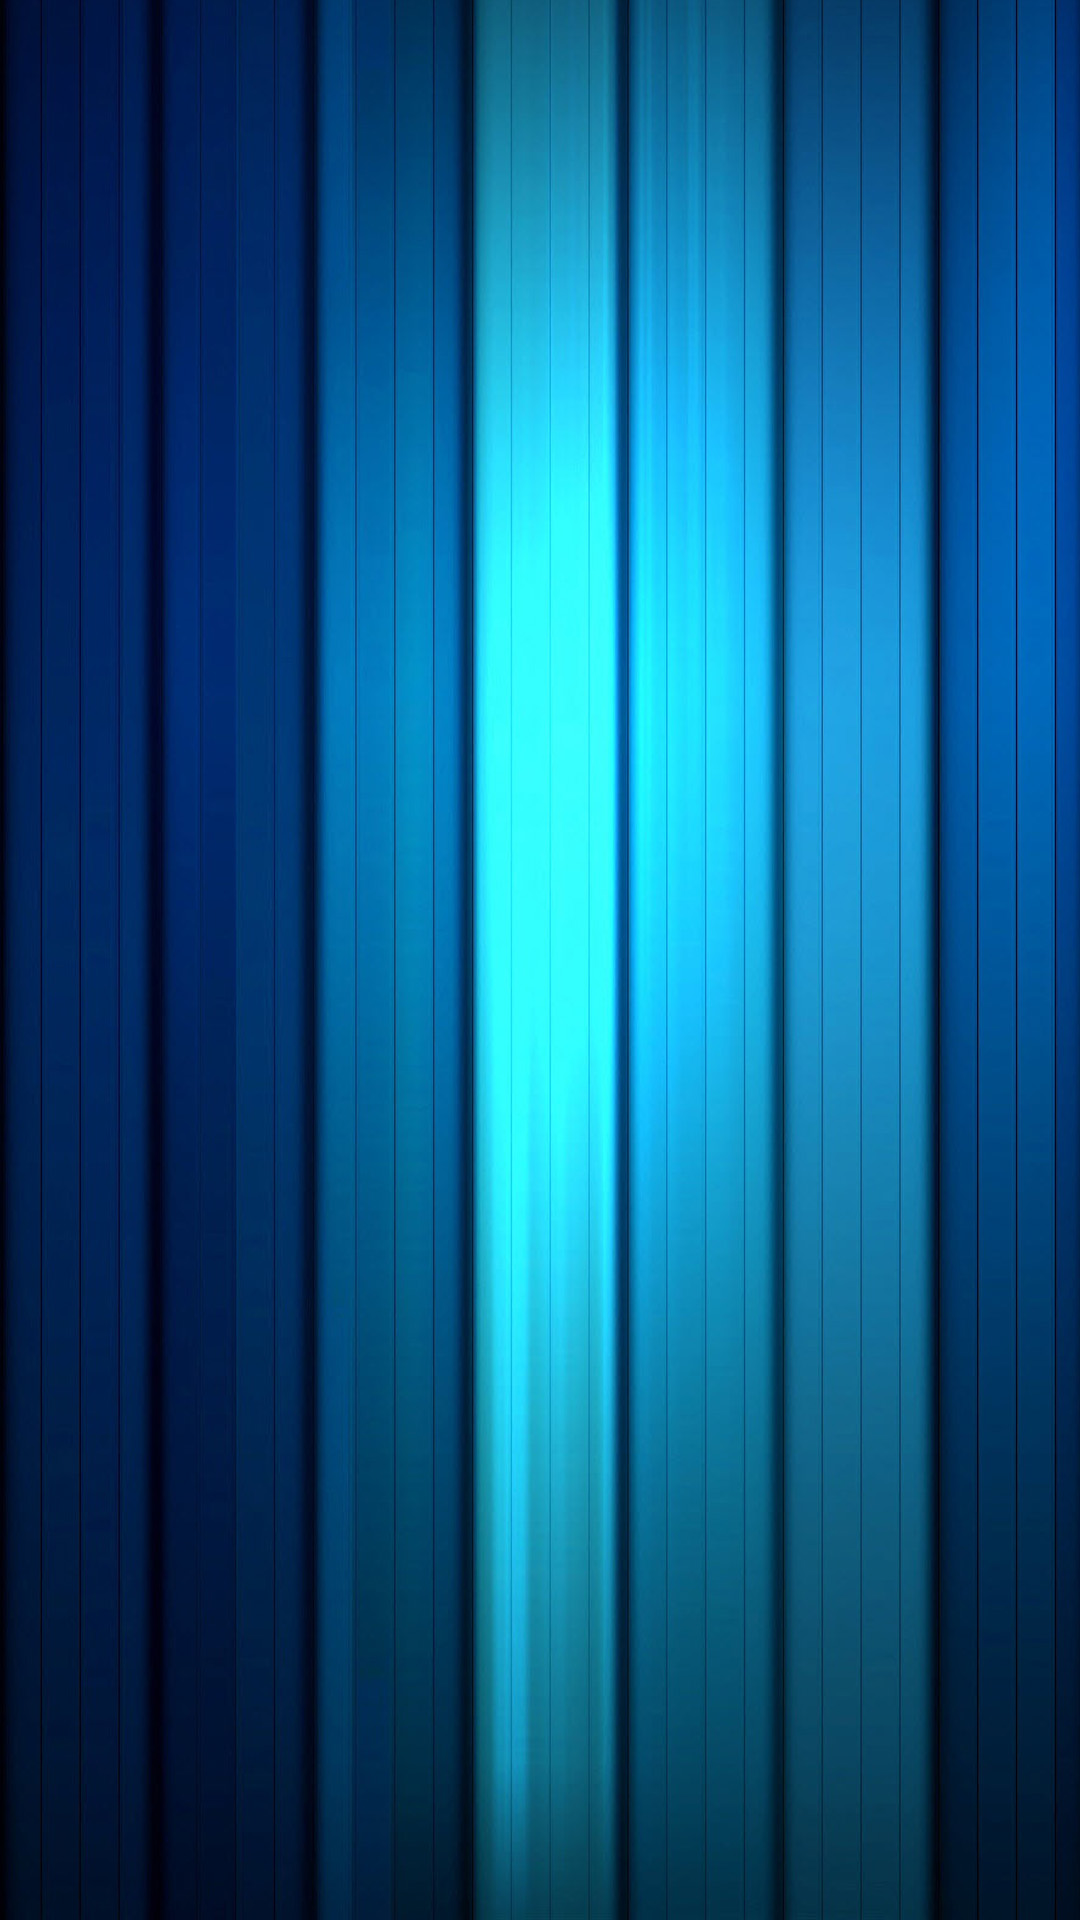 Motion stripes Galaxy S4 Wallpaper 1080x1920